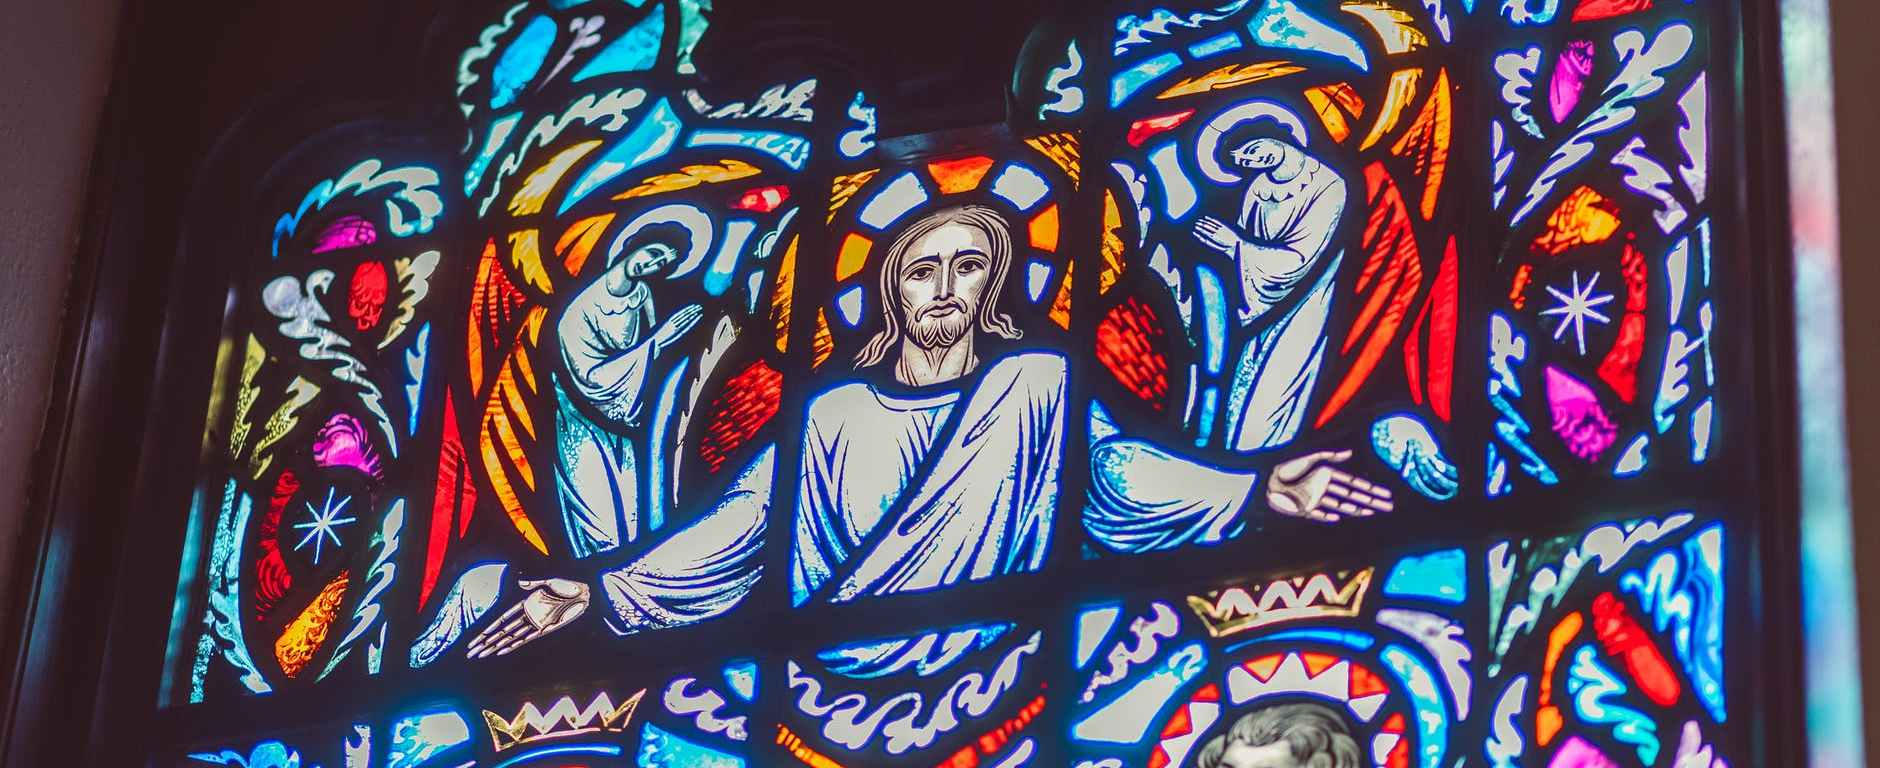 jesus image on stained glass